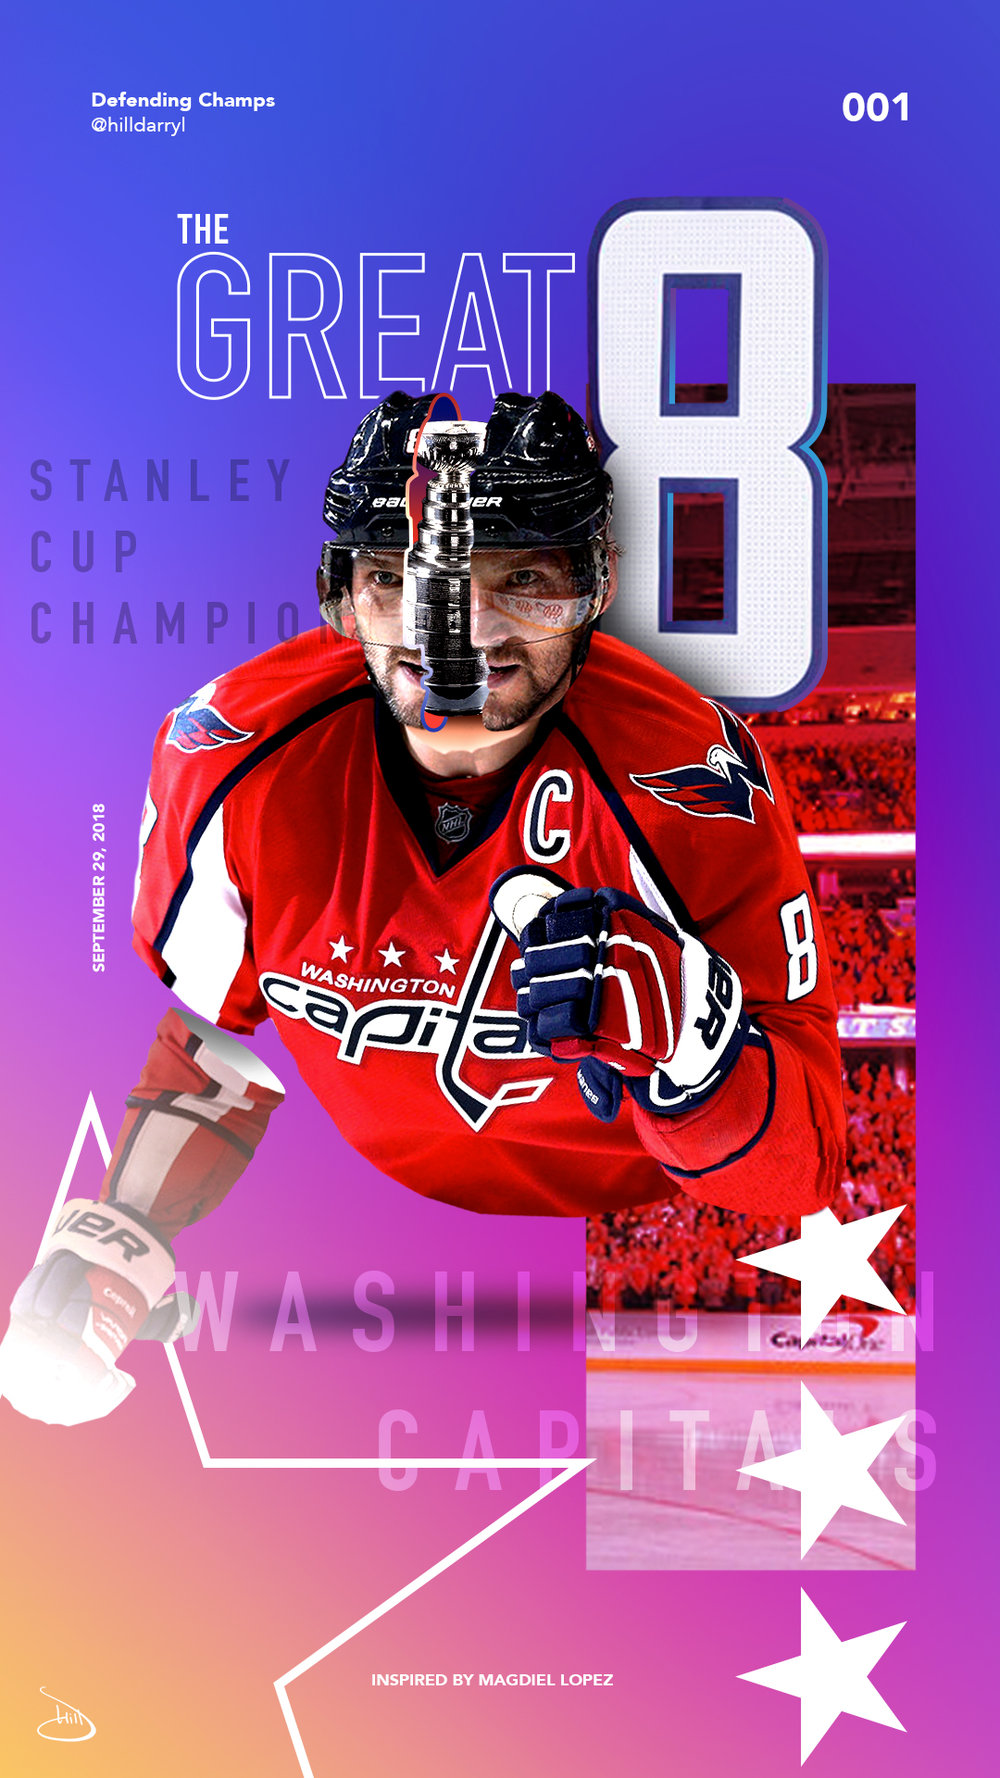 Wallpaper1_AlexOvechkin.jpg